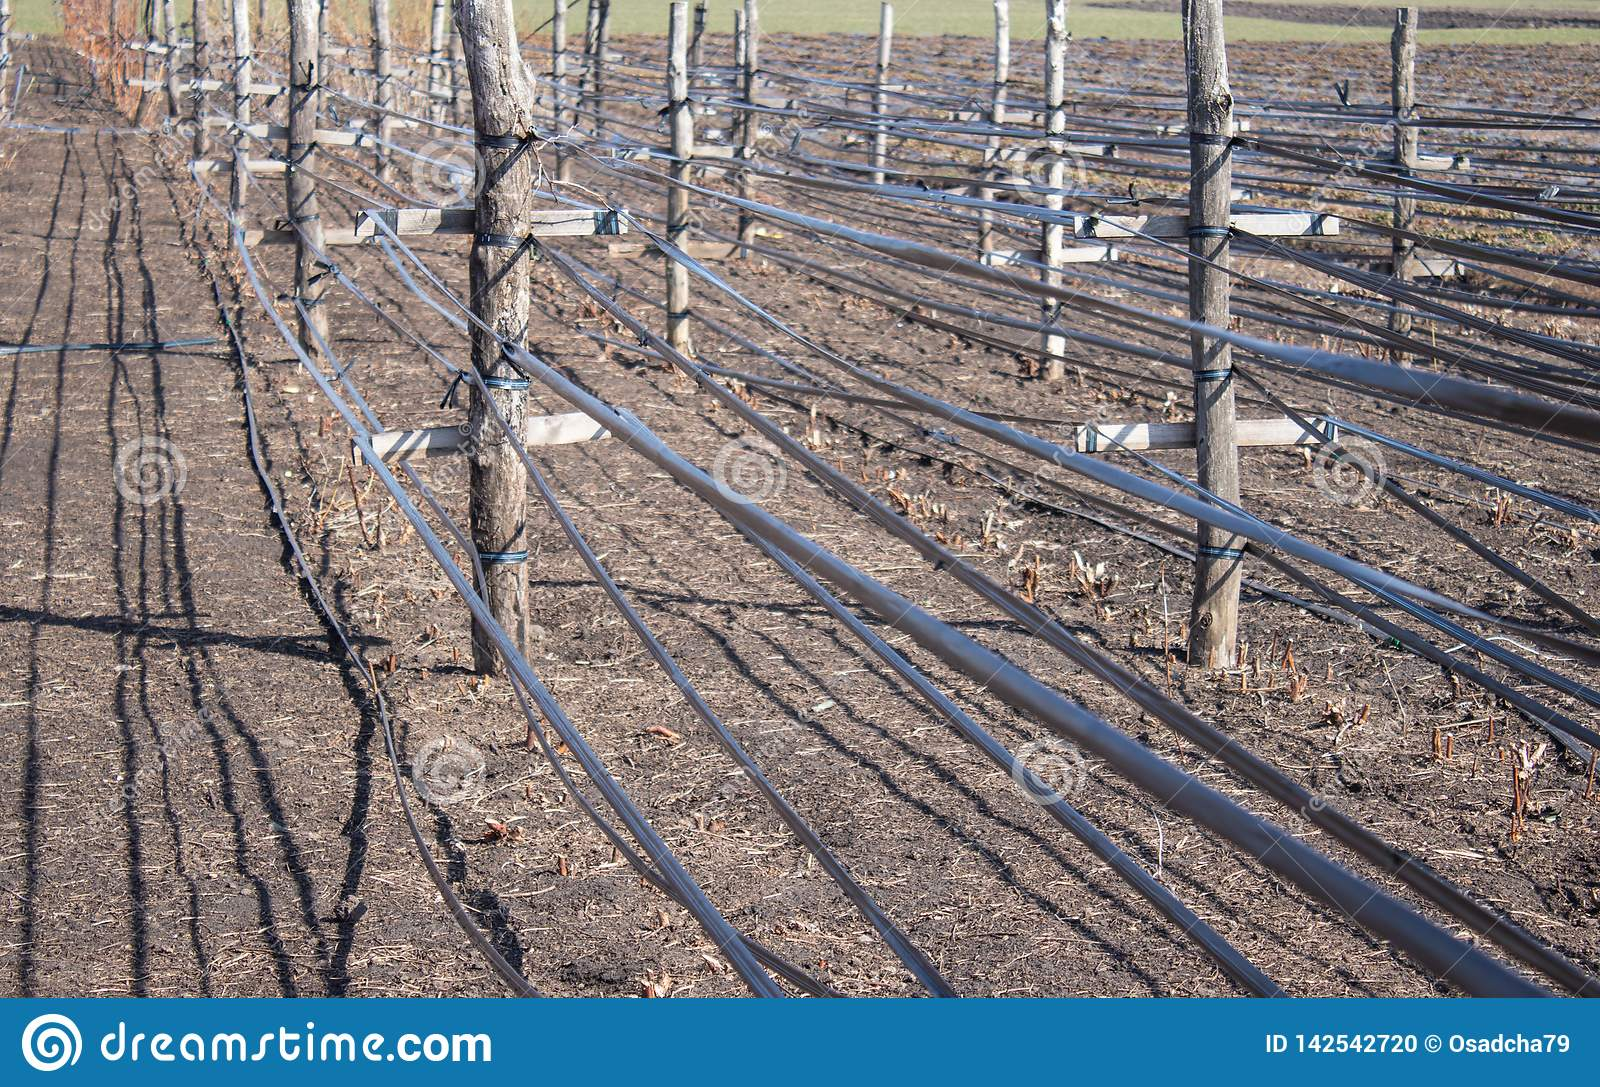 Growing raspberries in rows, care for raspberry bushes